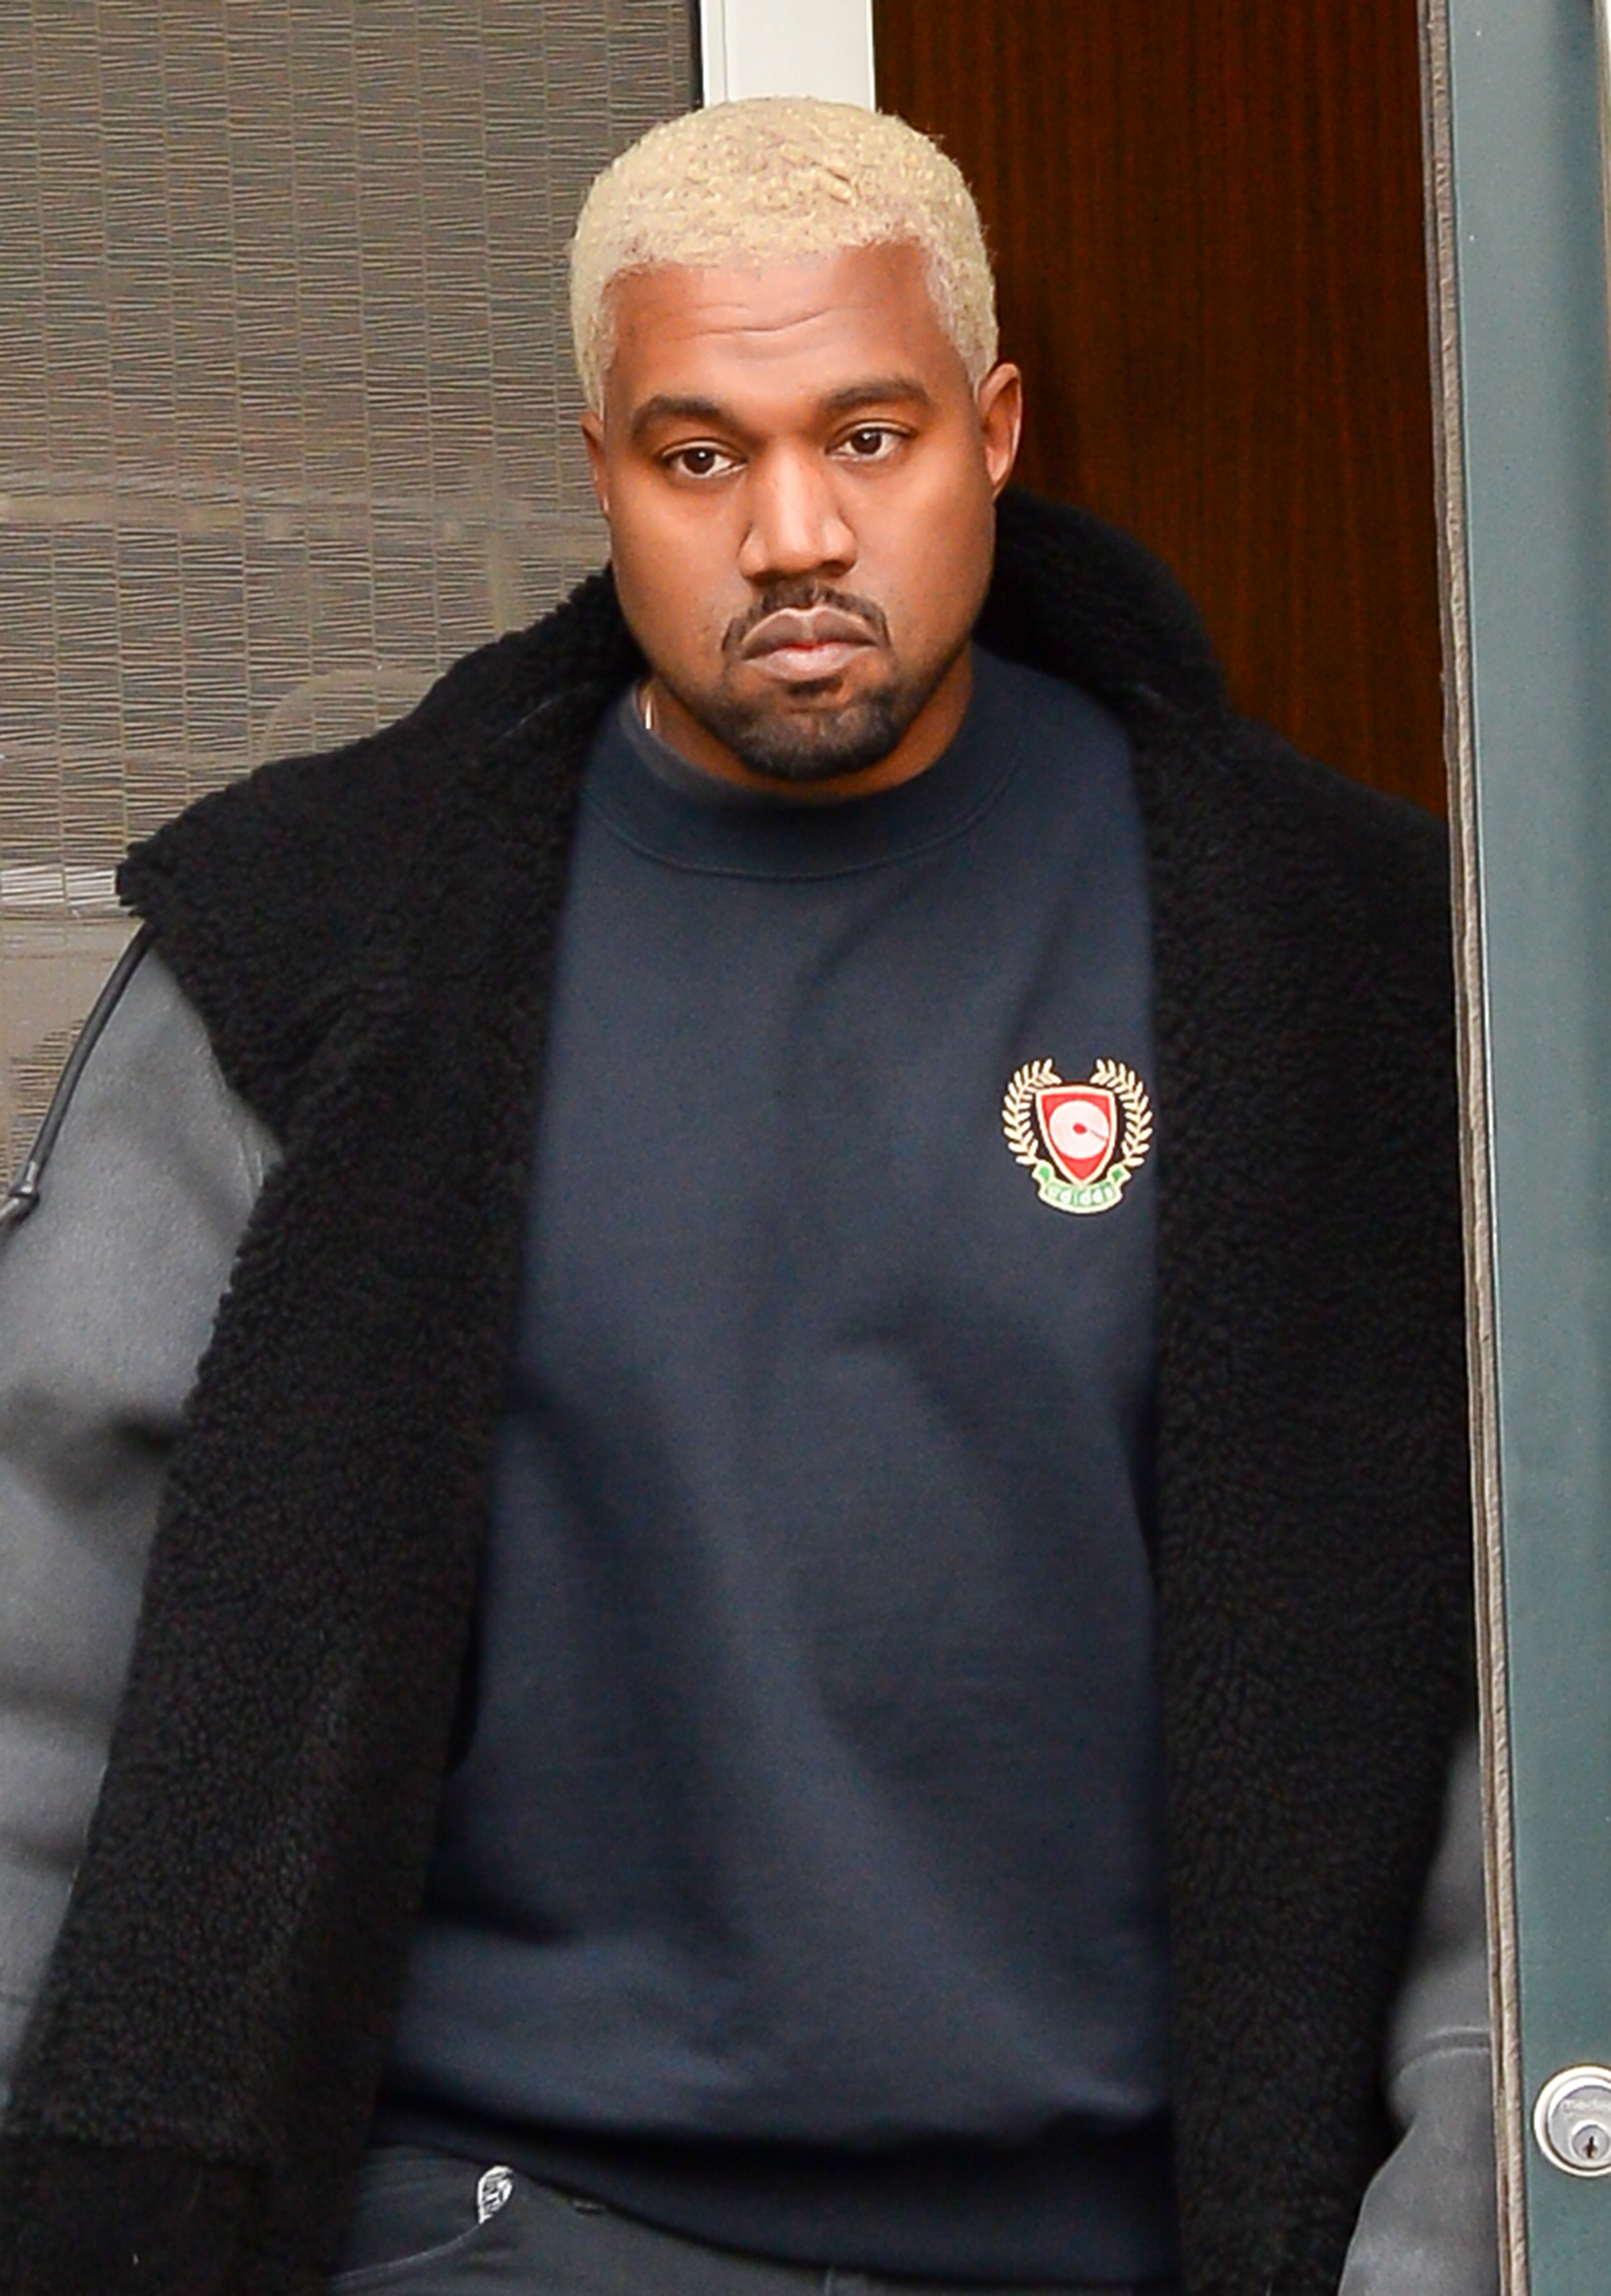 West kanye haircut designs forecast to wear for on every day in 2019